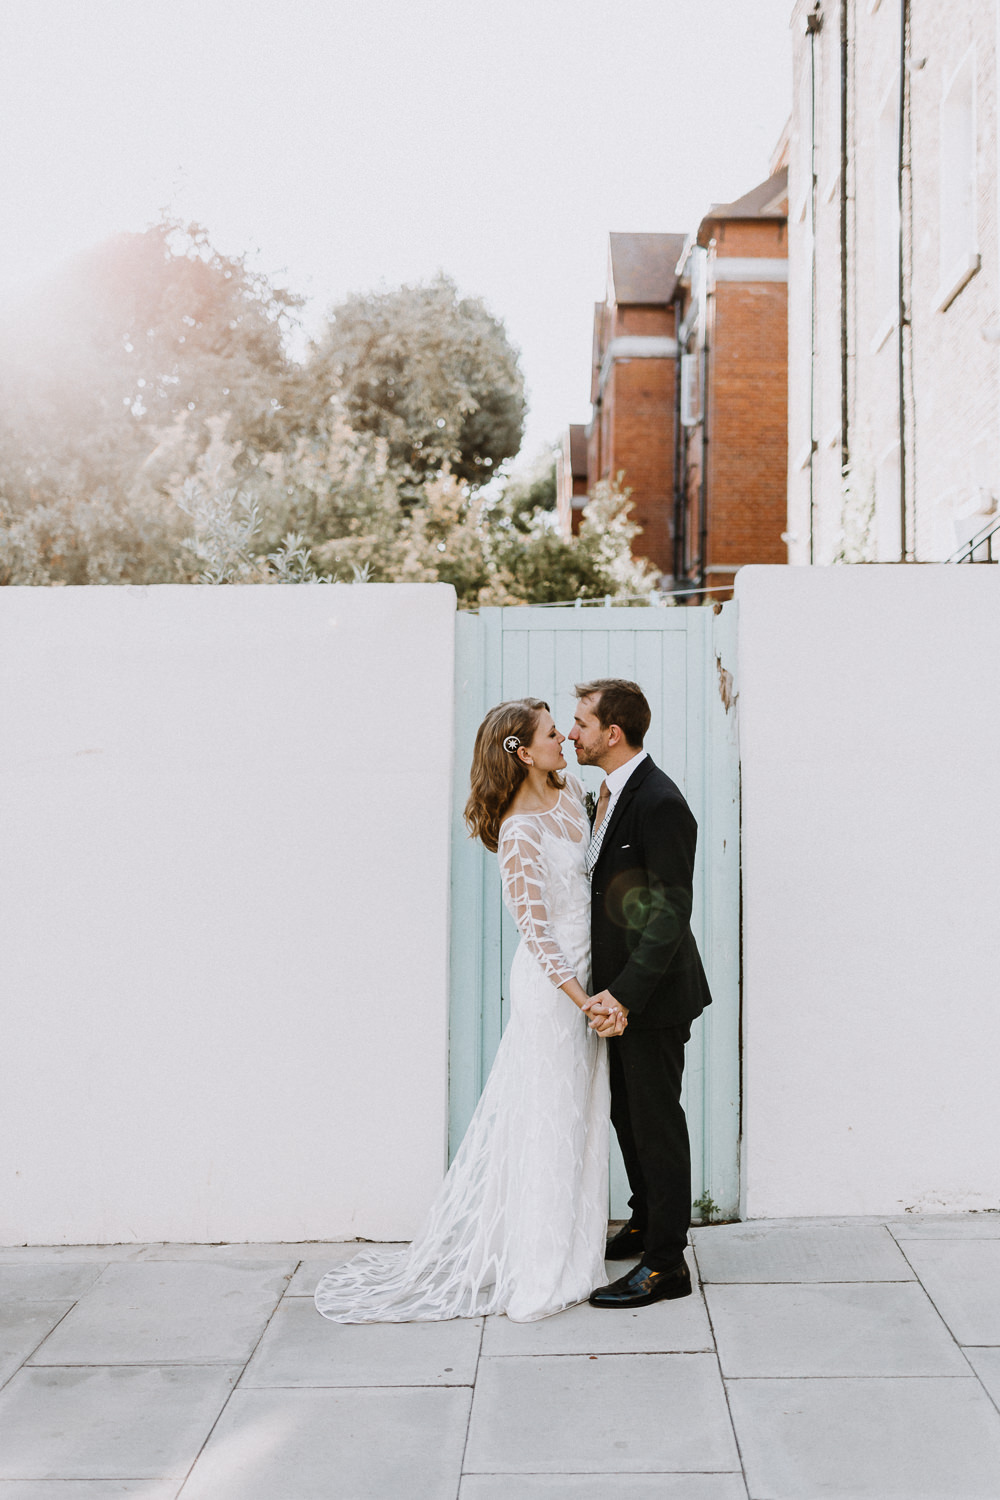 Beautiful bride Chloe wore a wedding dress by Halfpenny London | Image by Caitlin and Jones (http://www.caitlinandjones.co.uk/)